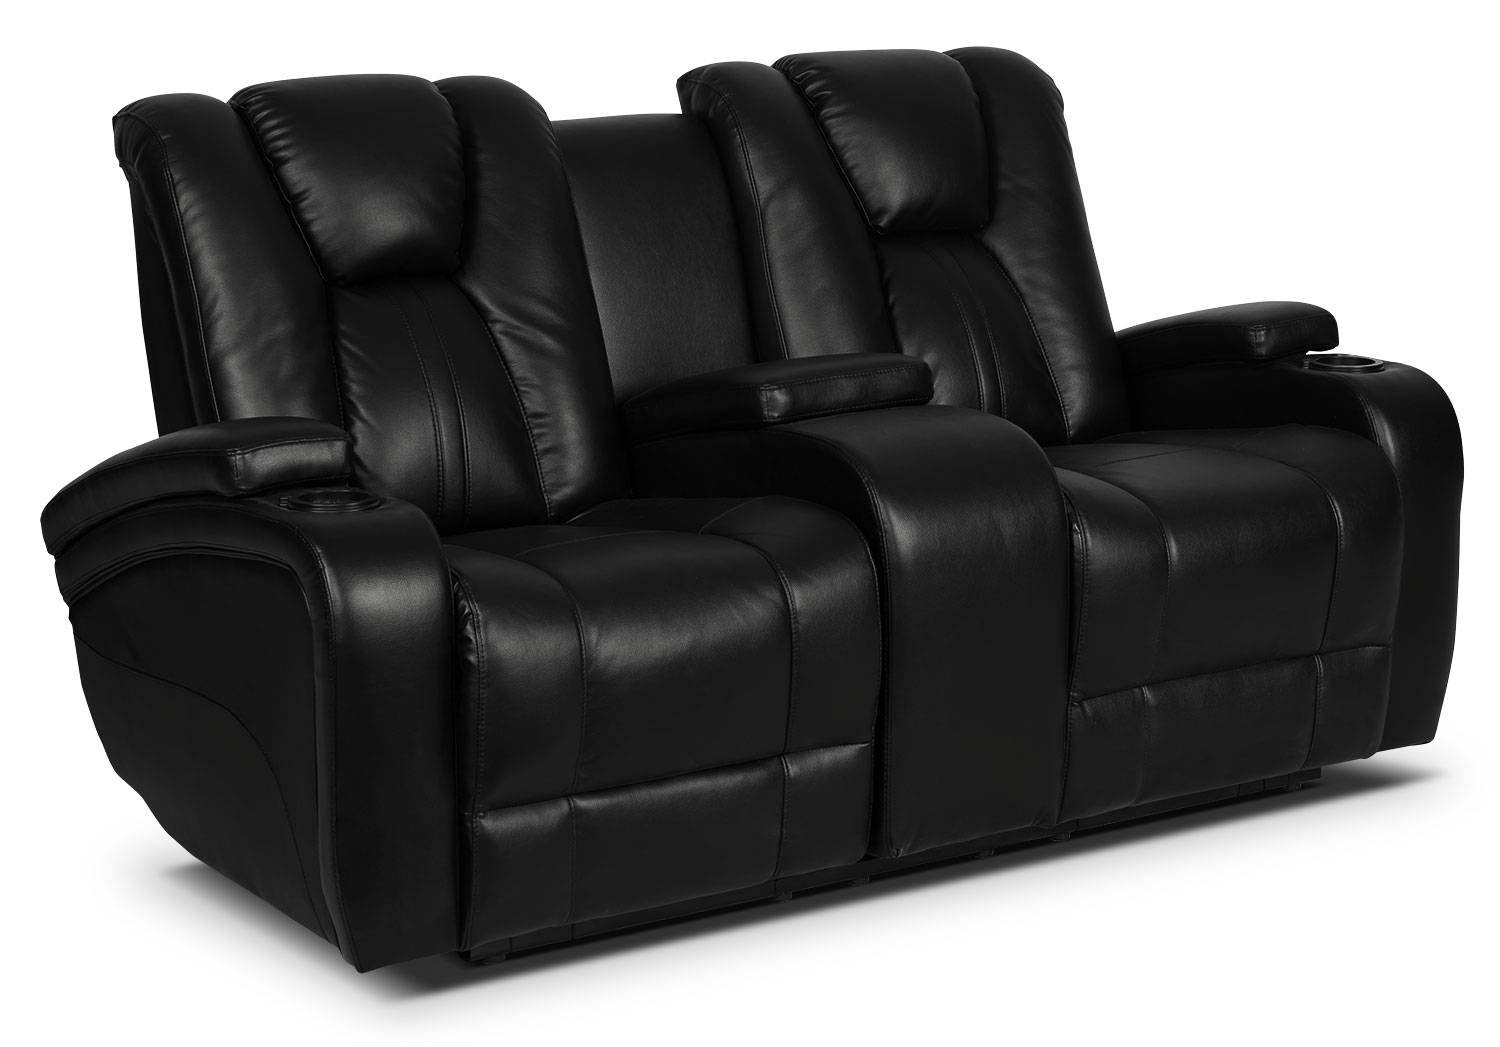 Zander Bonded Leather Power Reclining Loveseat - Black